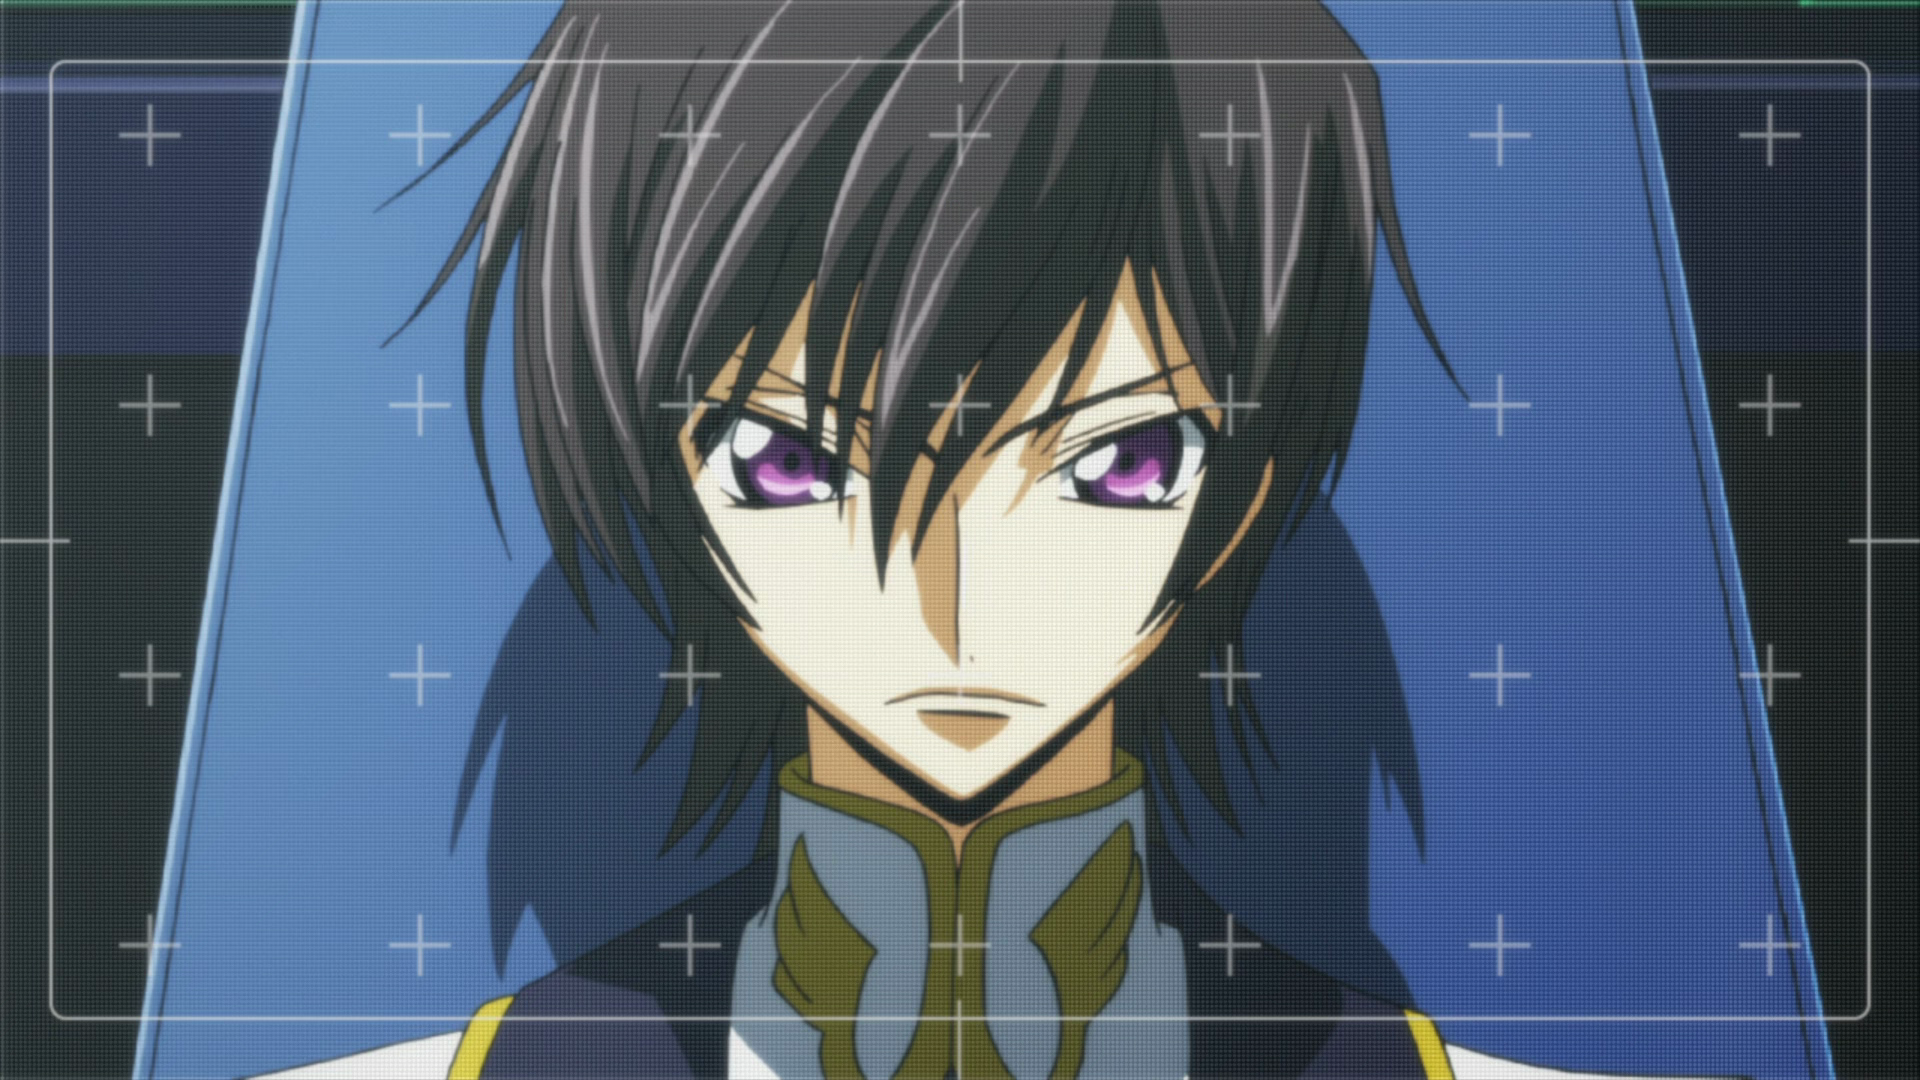 bonkai77] Code Geass Lelouch of the Rebellion R2 Episode 24